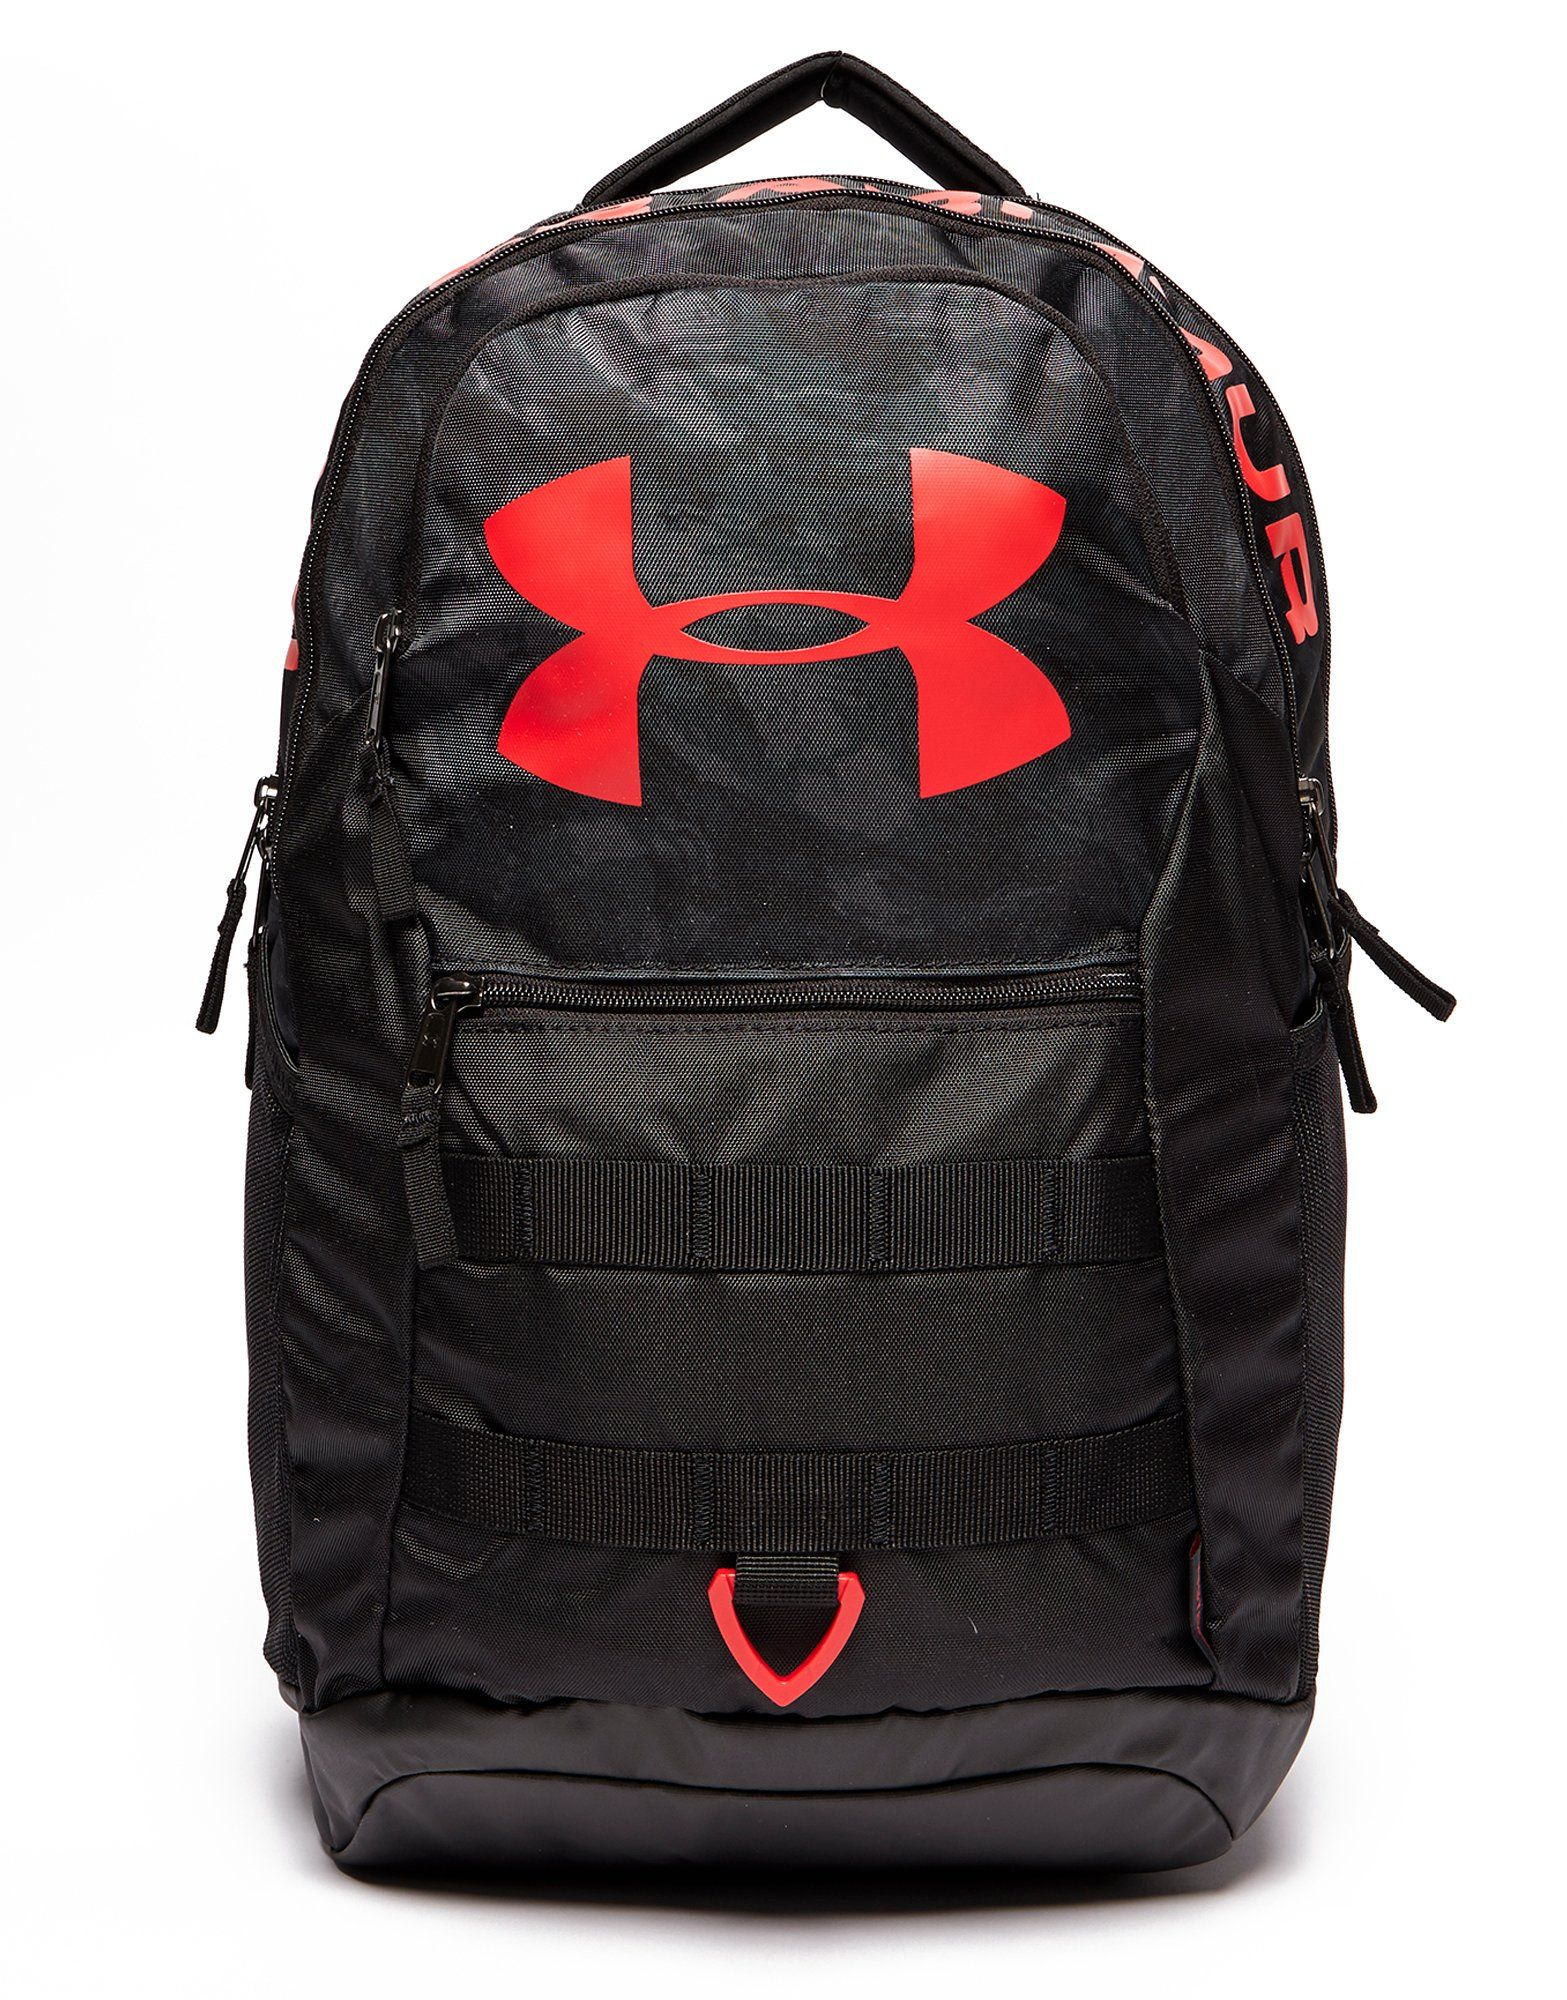 under armour sac dos big logo 5 0 jd sports. Black Bedroom Furniture Sets. Home Design Ideas